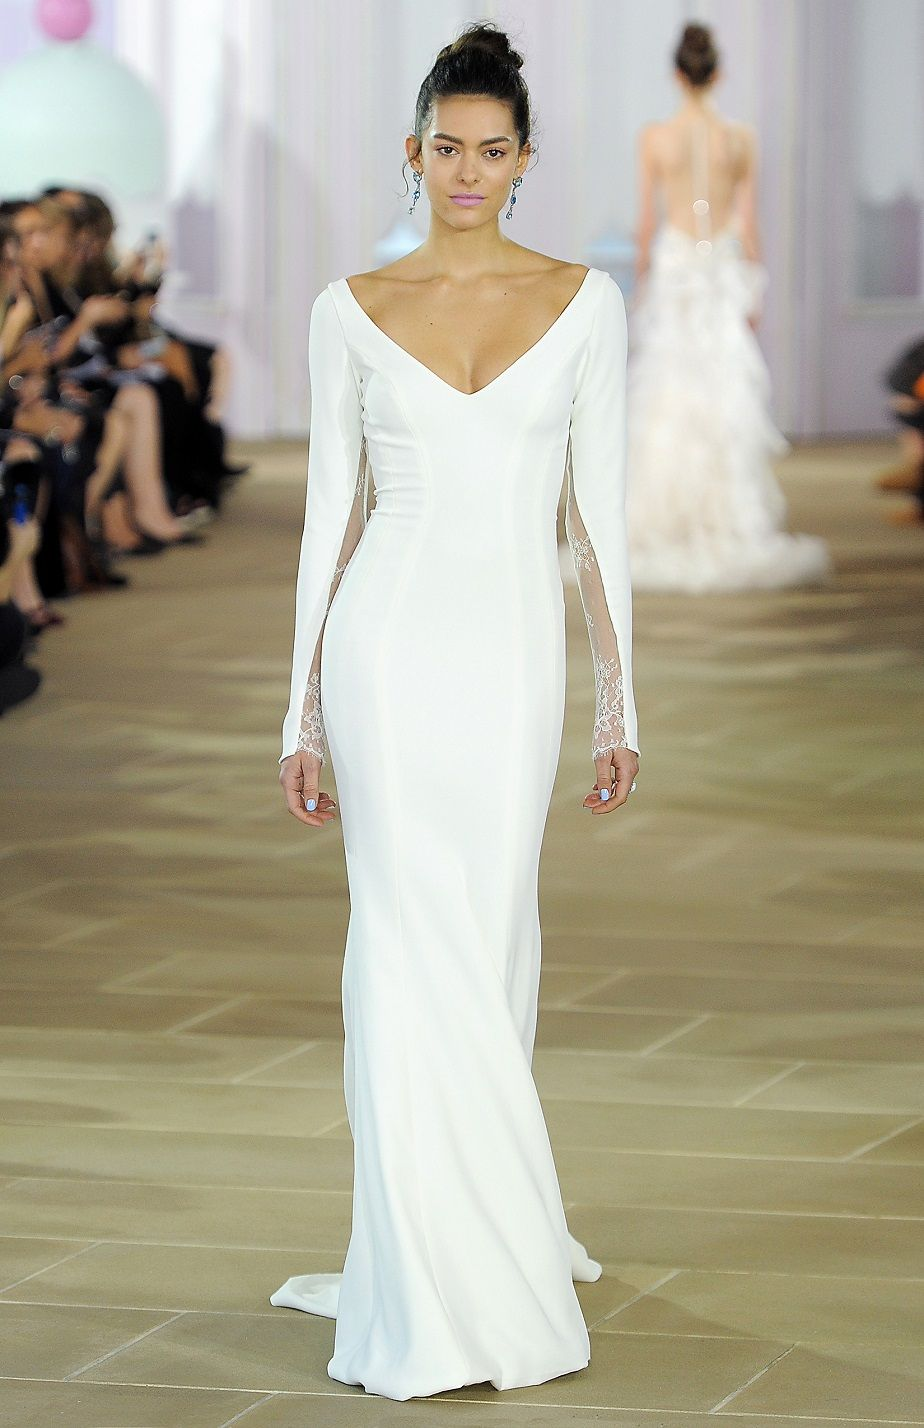 Elite wedding dresses  Madeleine  Ines Di Santo FallWinter   Luelite Bridal Boston